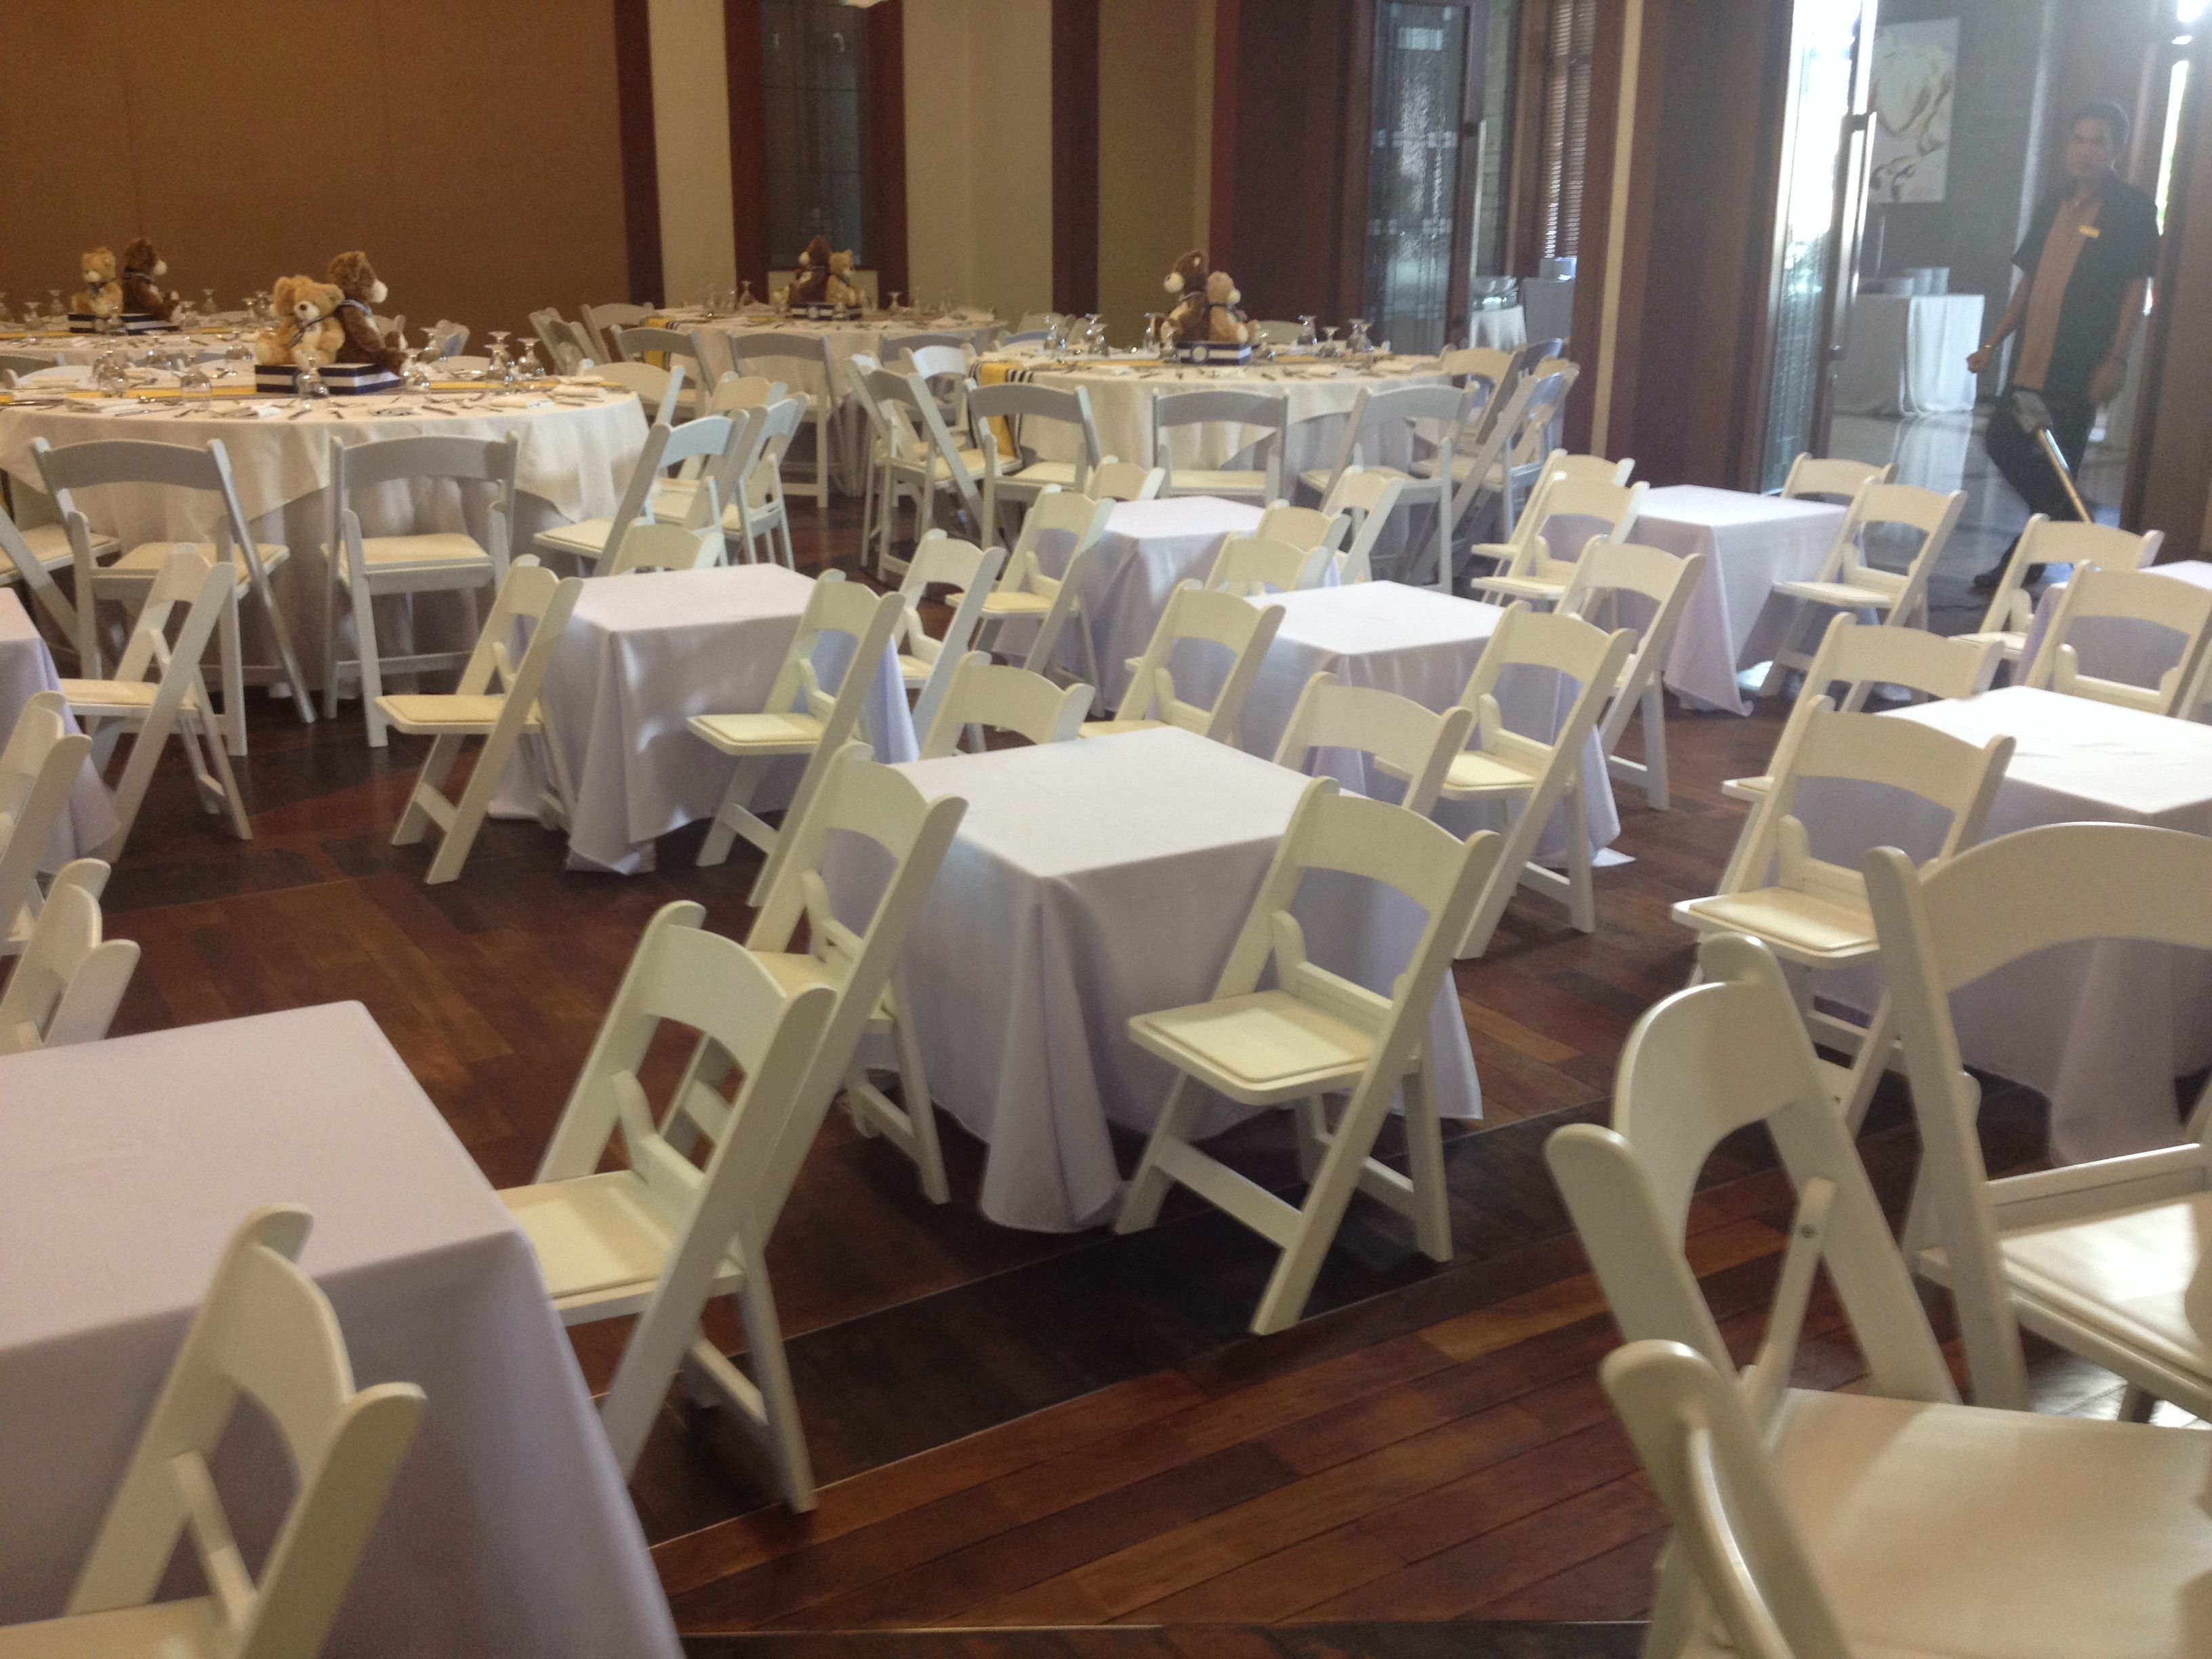 Reserv s White Folding Chairs and Kid Folding Chairs at a